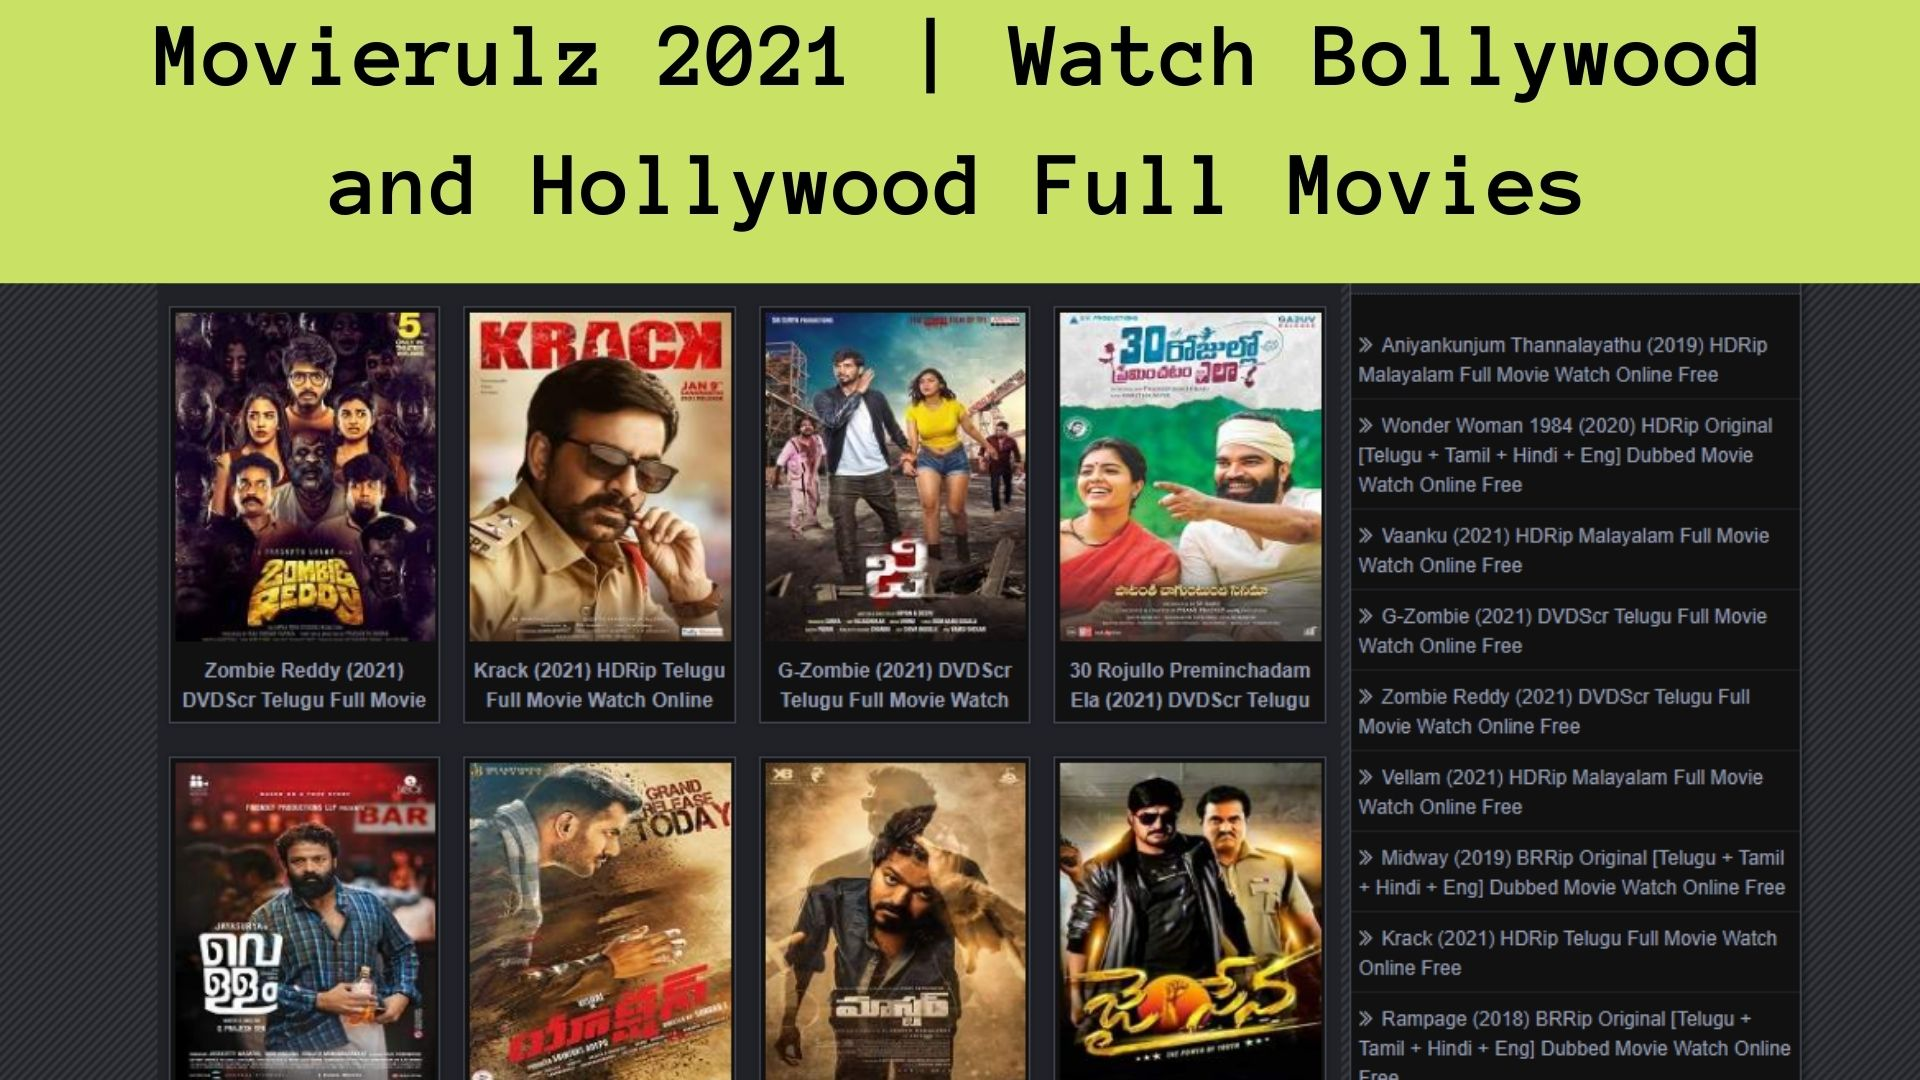 Movierulz 2021 | Watch Bollywood and Hollywood Full Movies